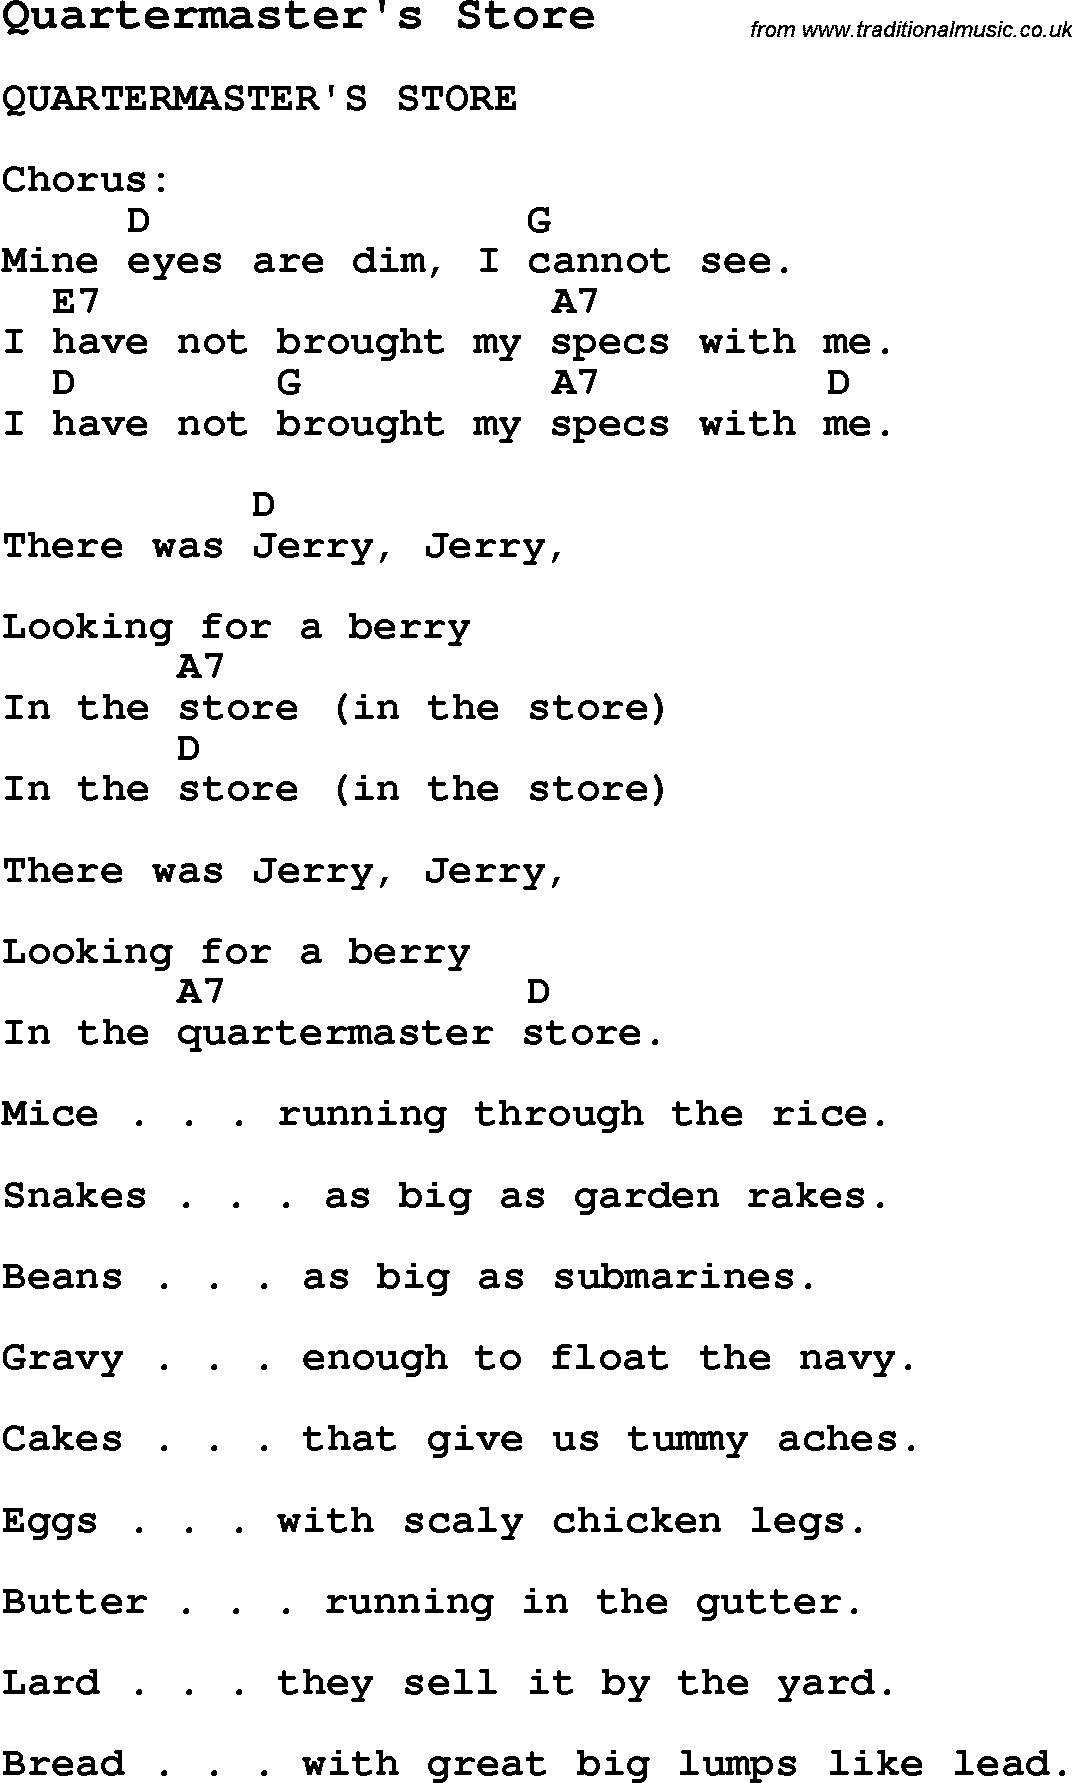 Summer Camp Song, Quartermaster's Store, with lyrics and ...